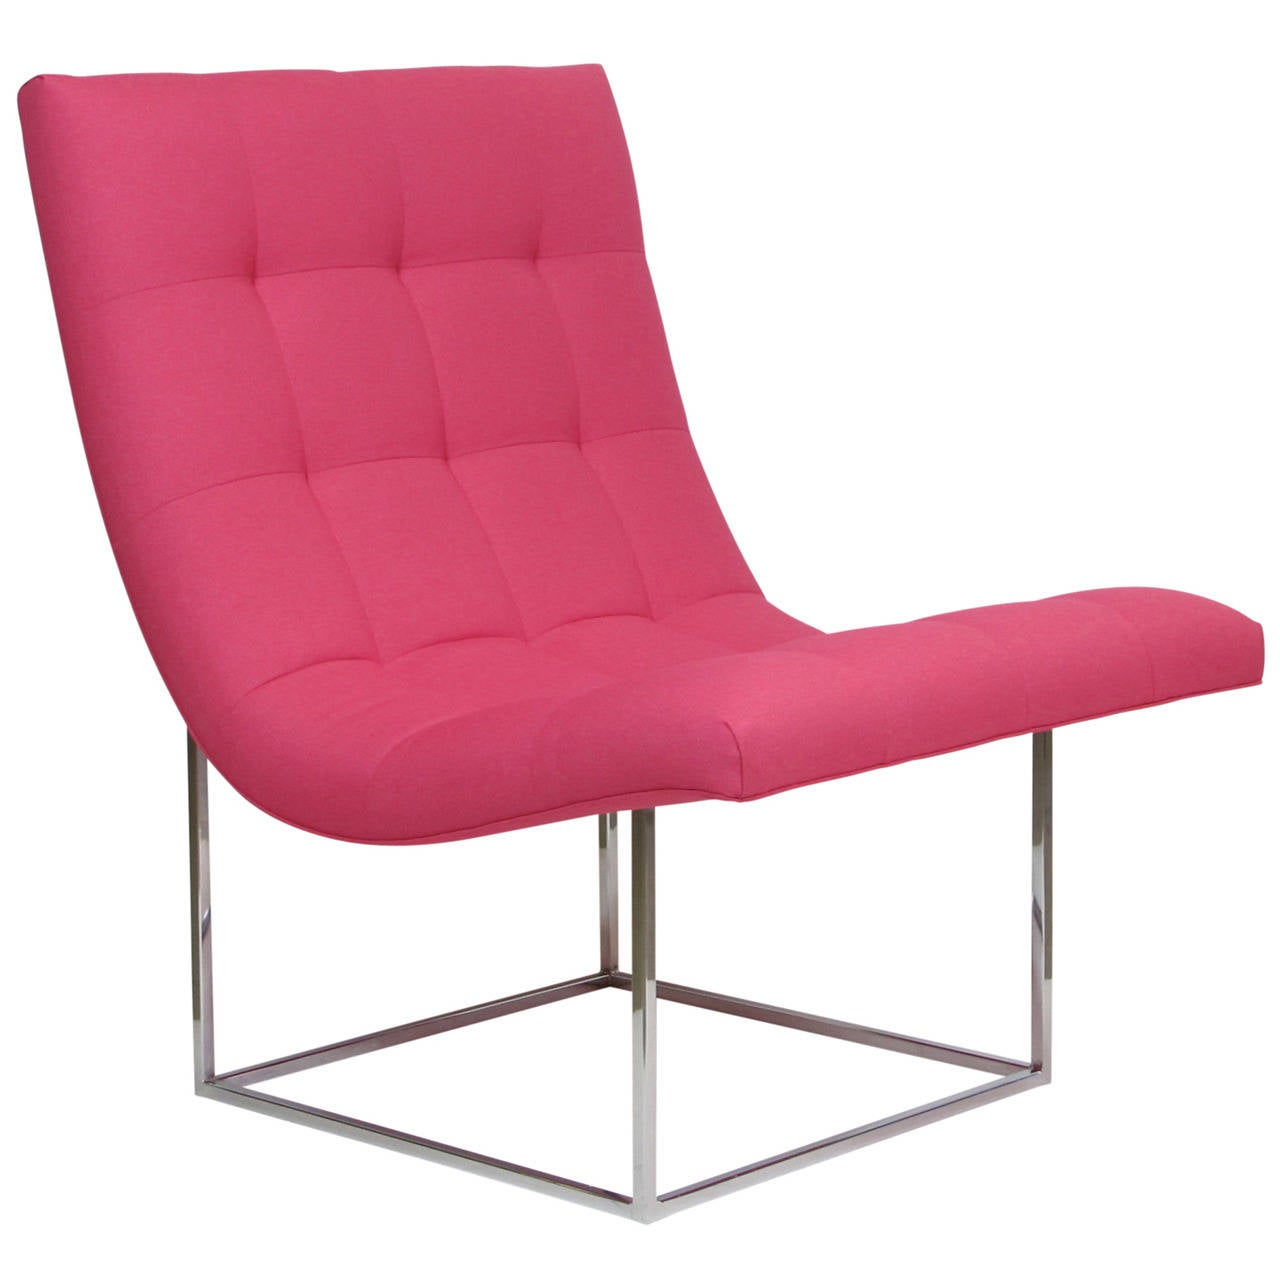 Milo Baughman Scoop Lounge Chair At 1stdibs